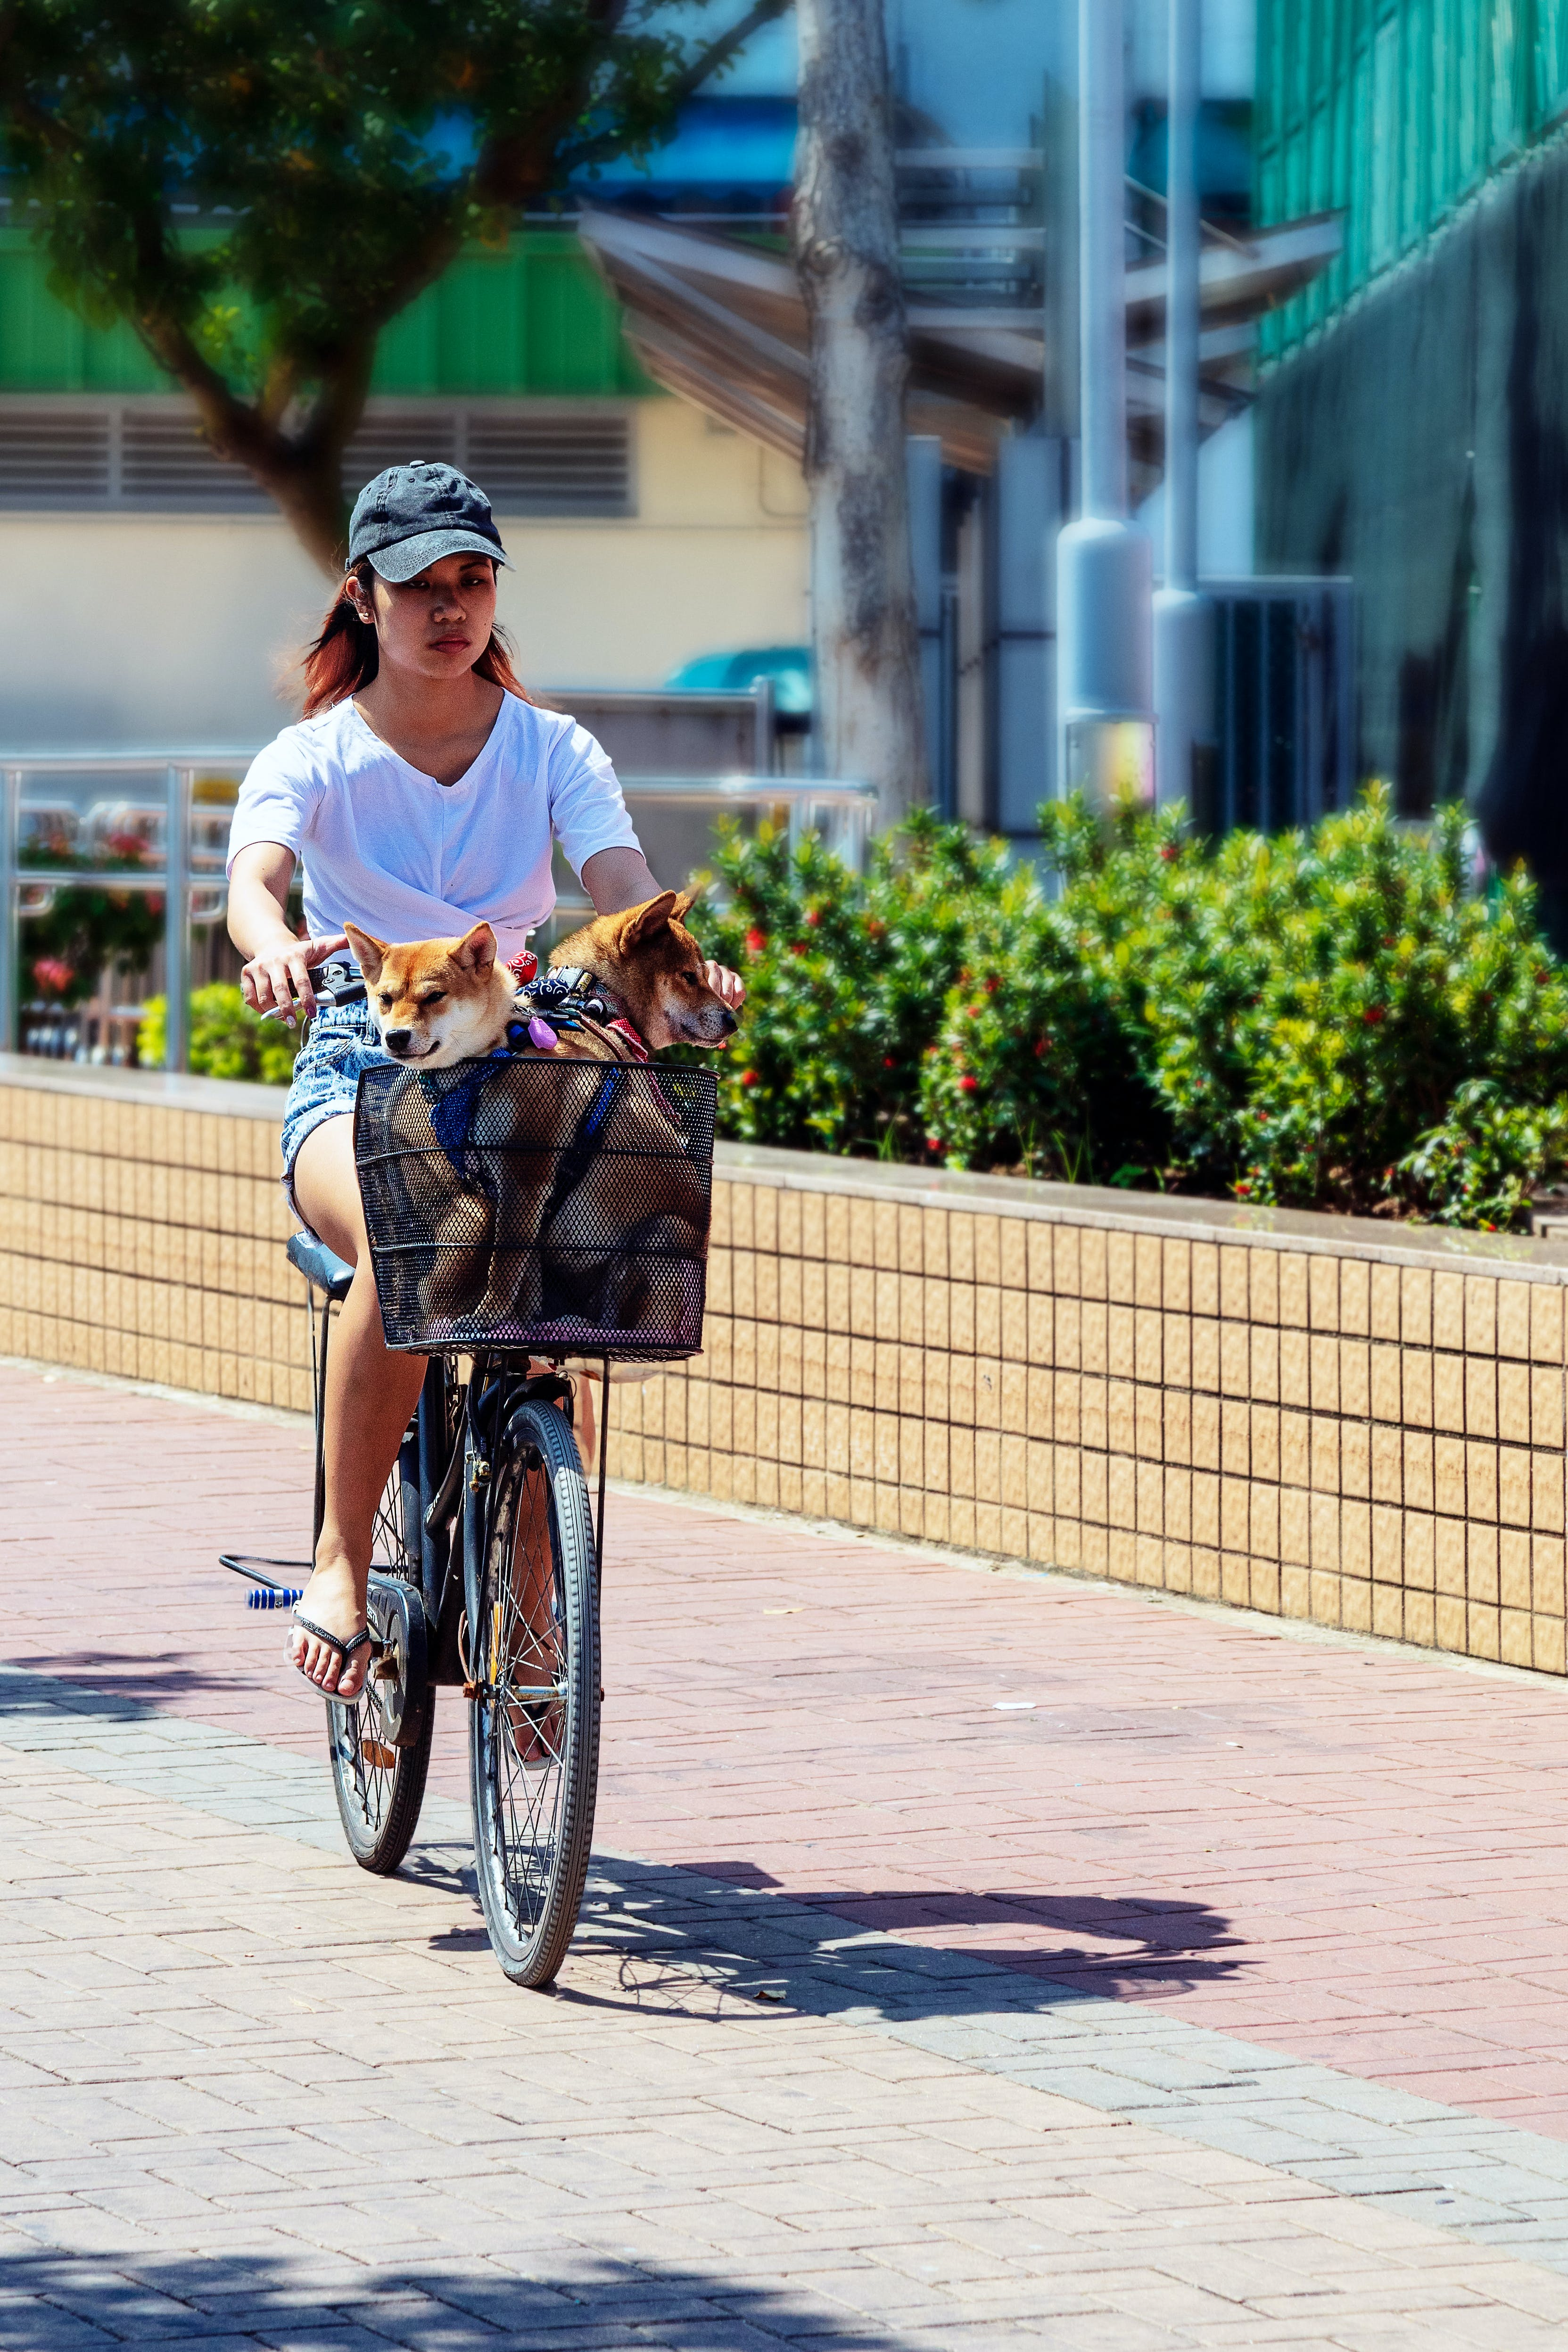 Woman Riding Bicycle With Dog in Basket